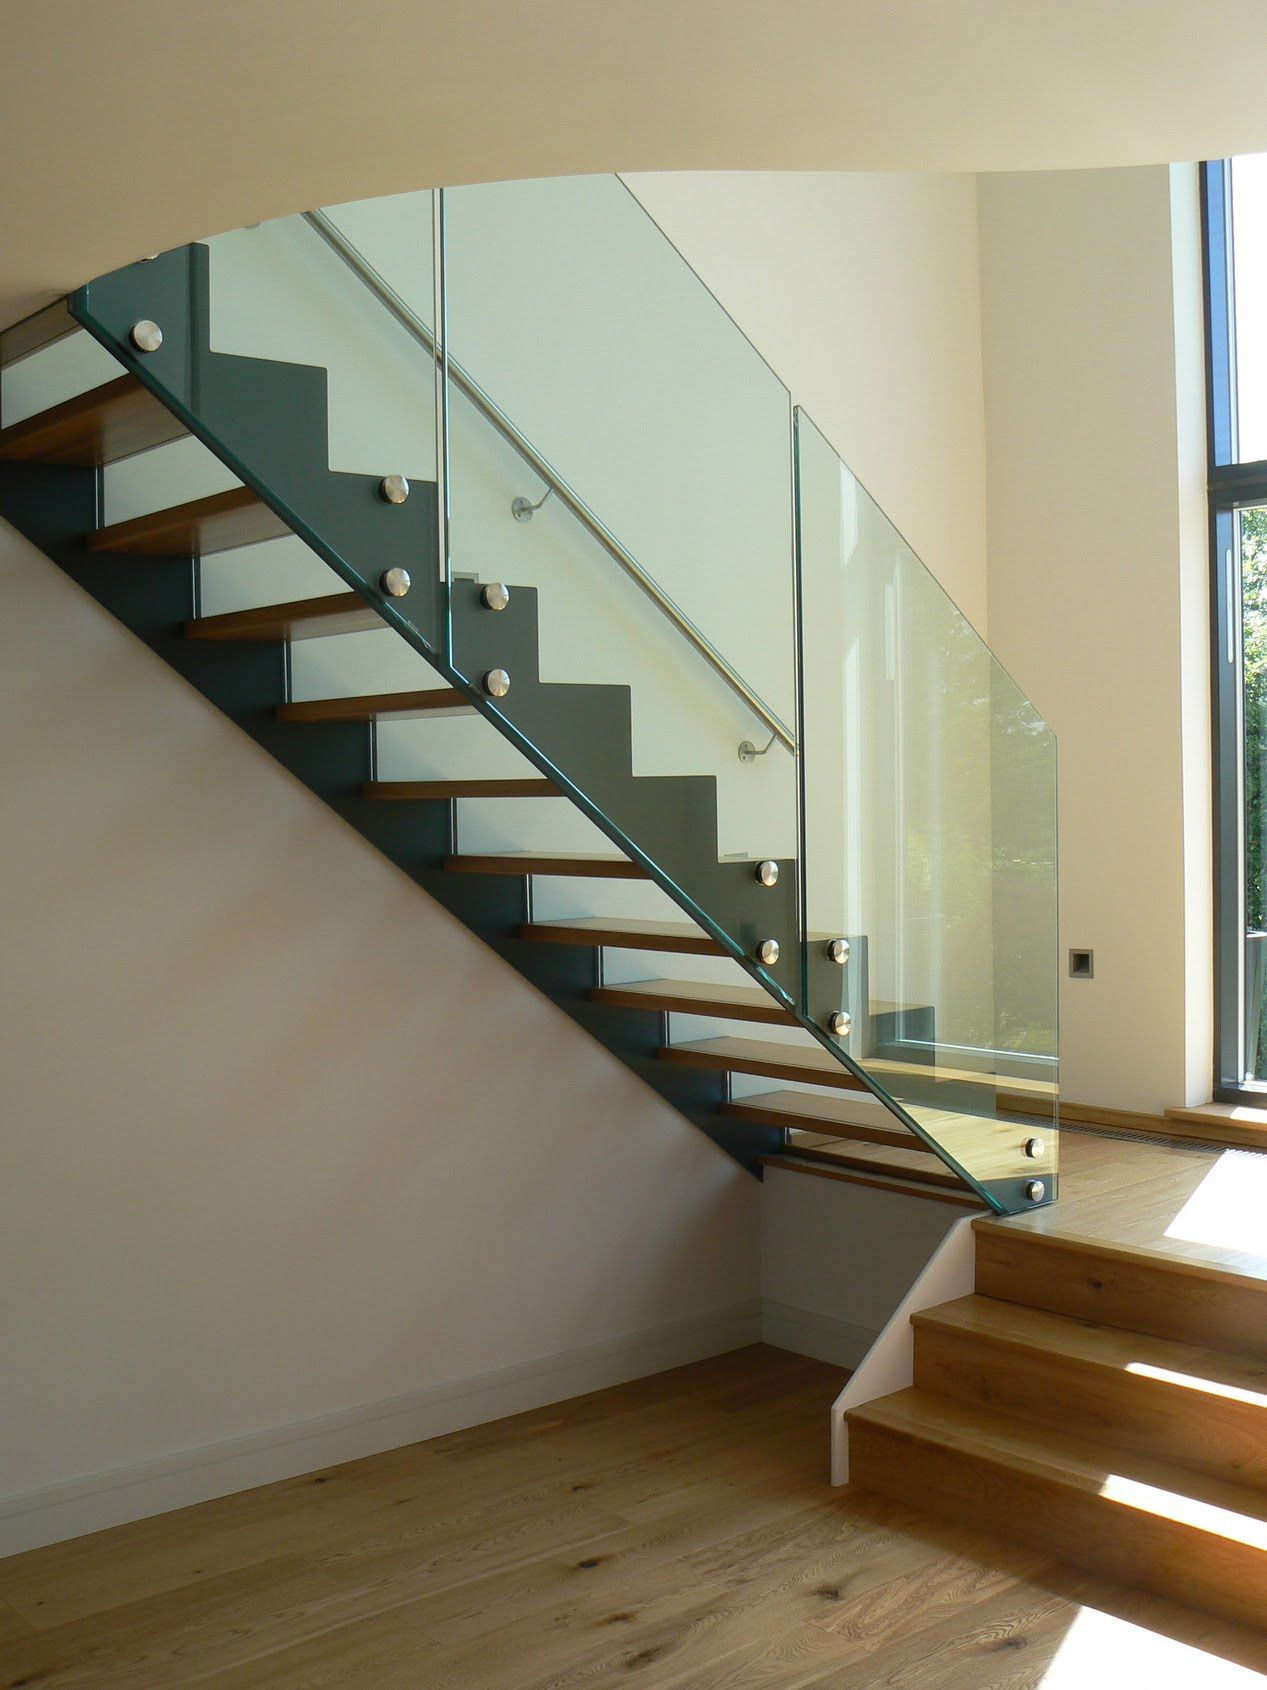 Creating Random Stair and stair railing in Revit Architecture & Creating Random Stair and stair railing in Revit Architecture ...